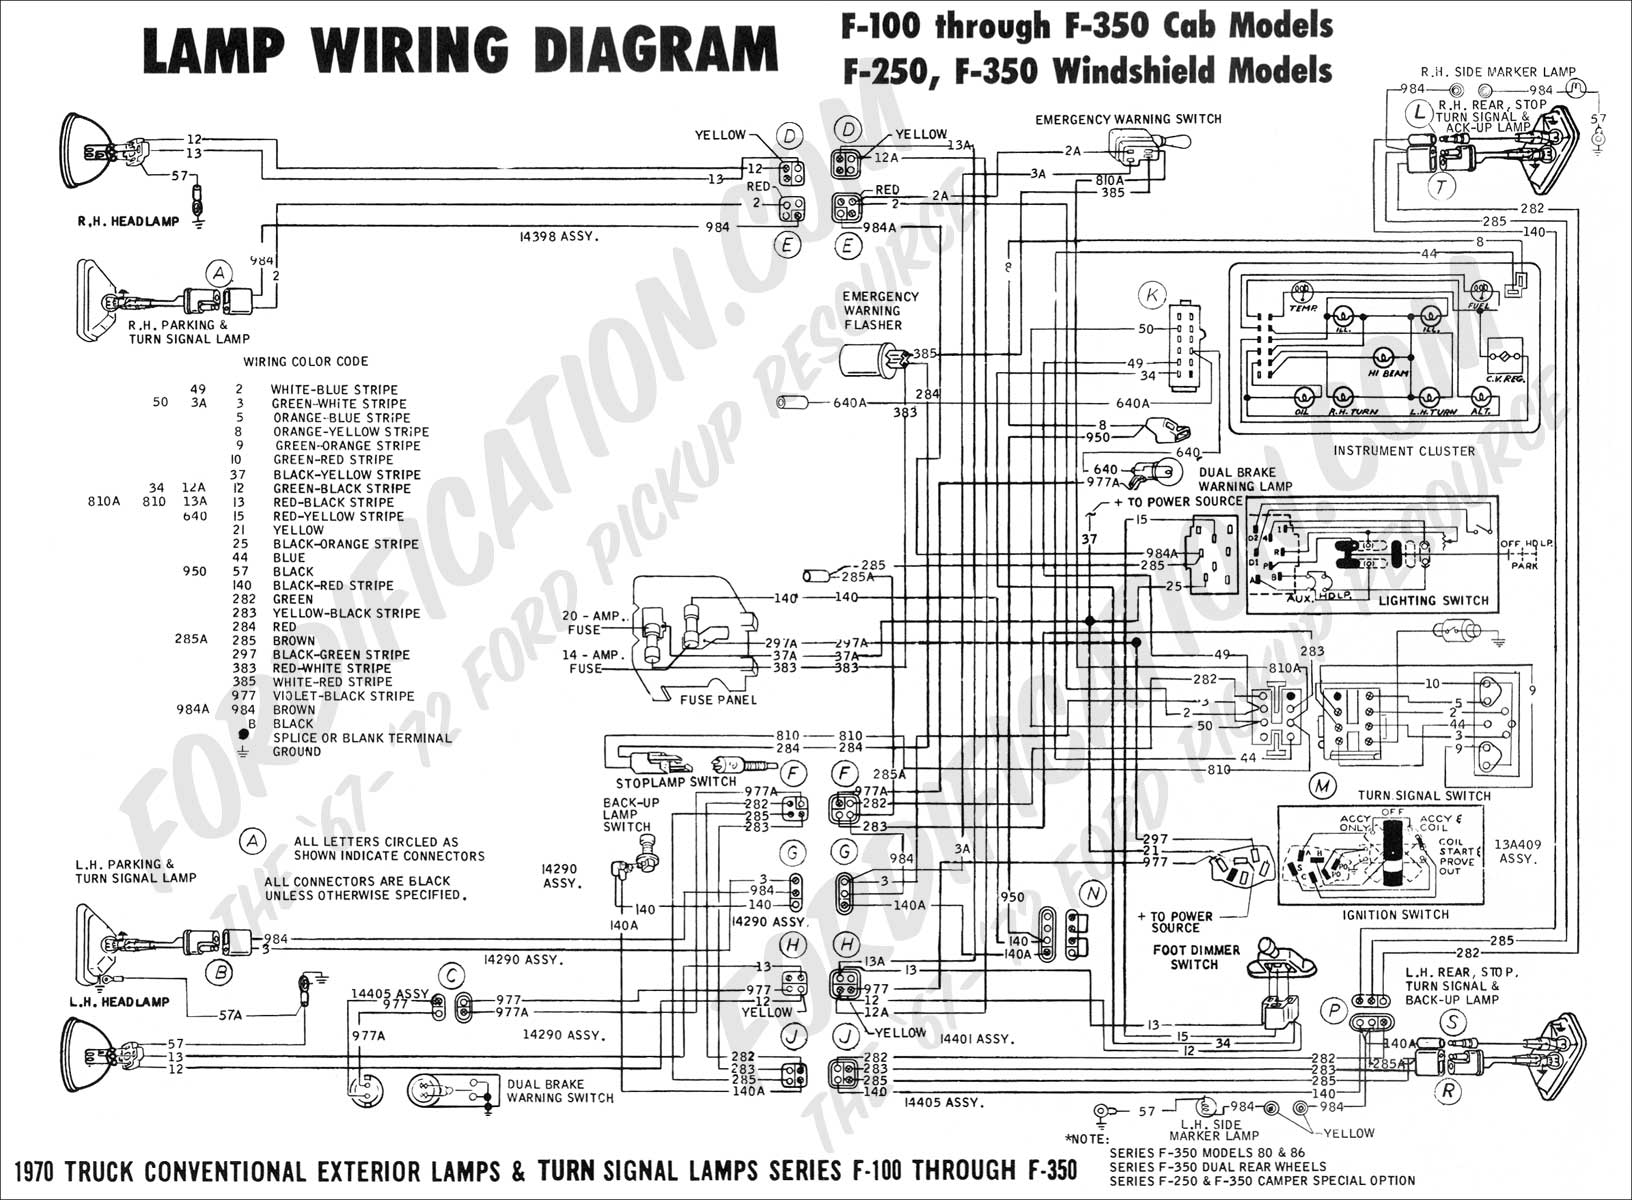 wiring diagram_70ext lights01 ford f250 wiring diagram online f250 trailer wiring diagram 2015 ford f150 trailer wiring diagram at love-stories.co